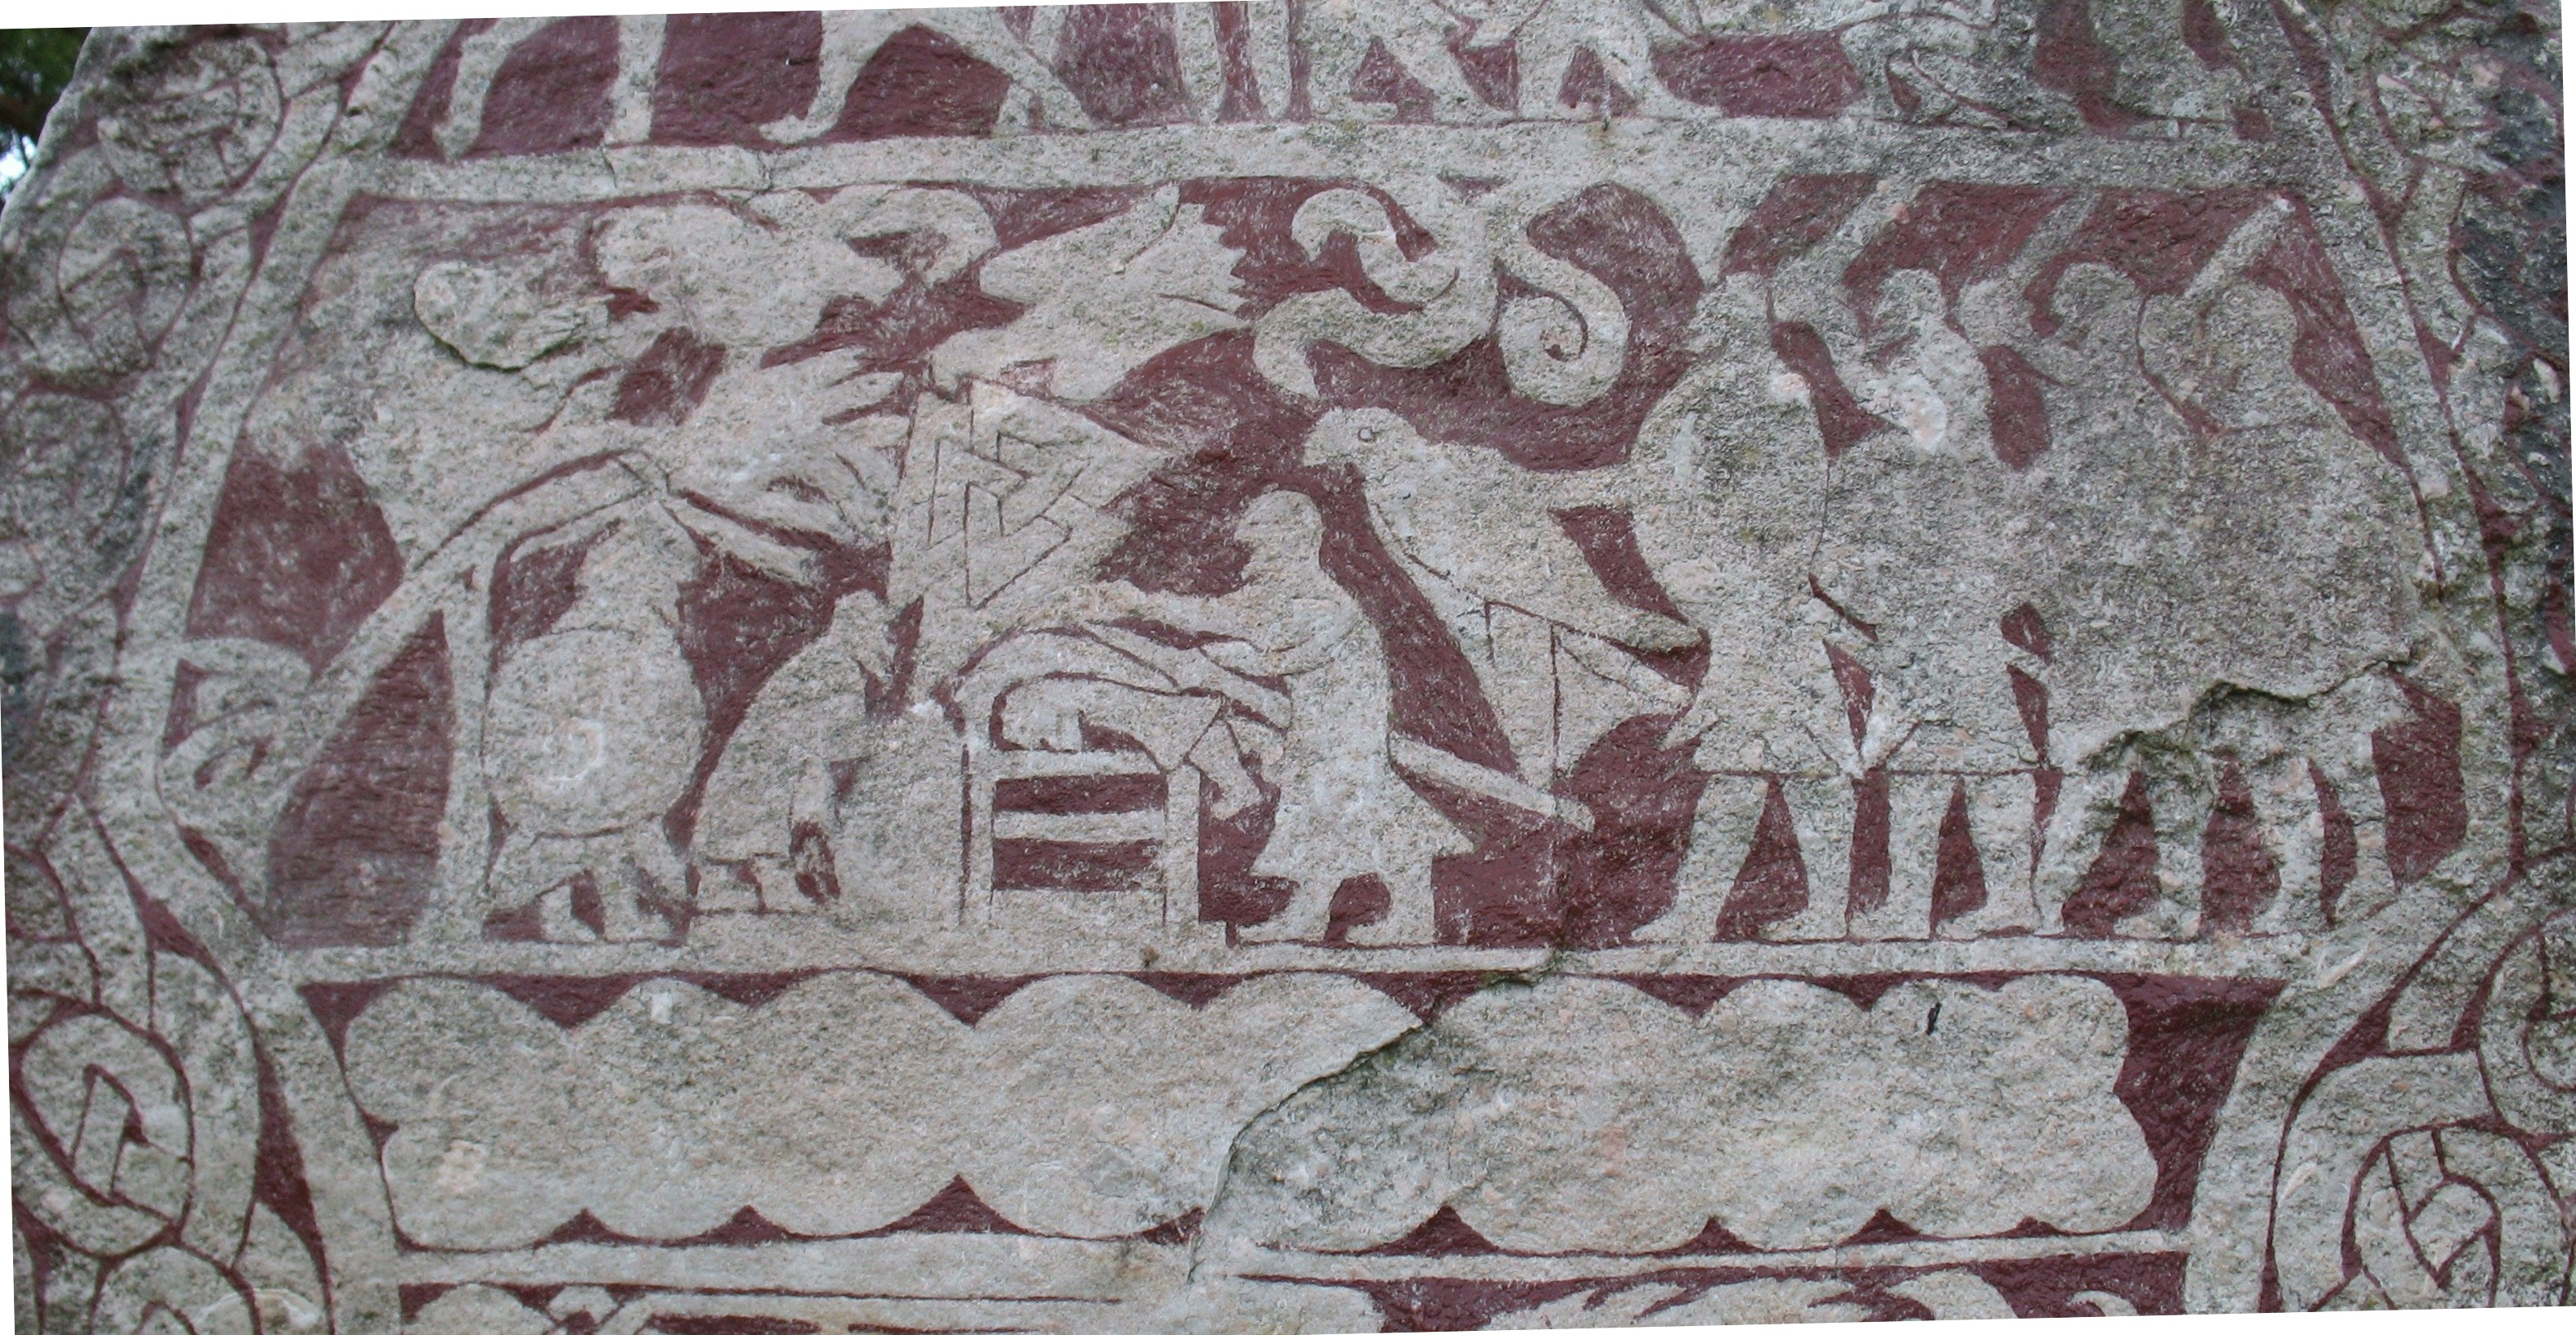 Sacrificial scene on Hammars (I).JPG